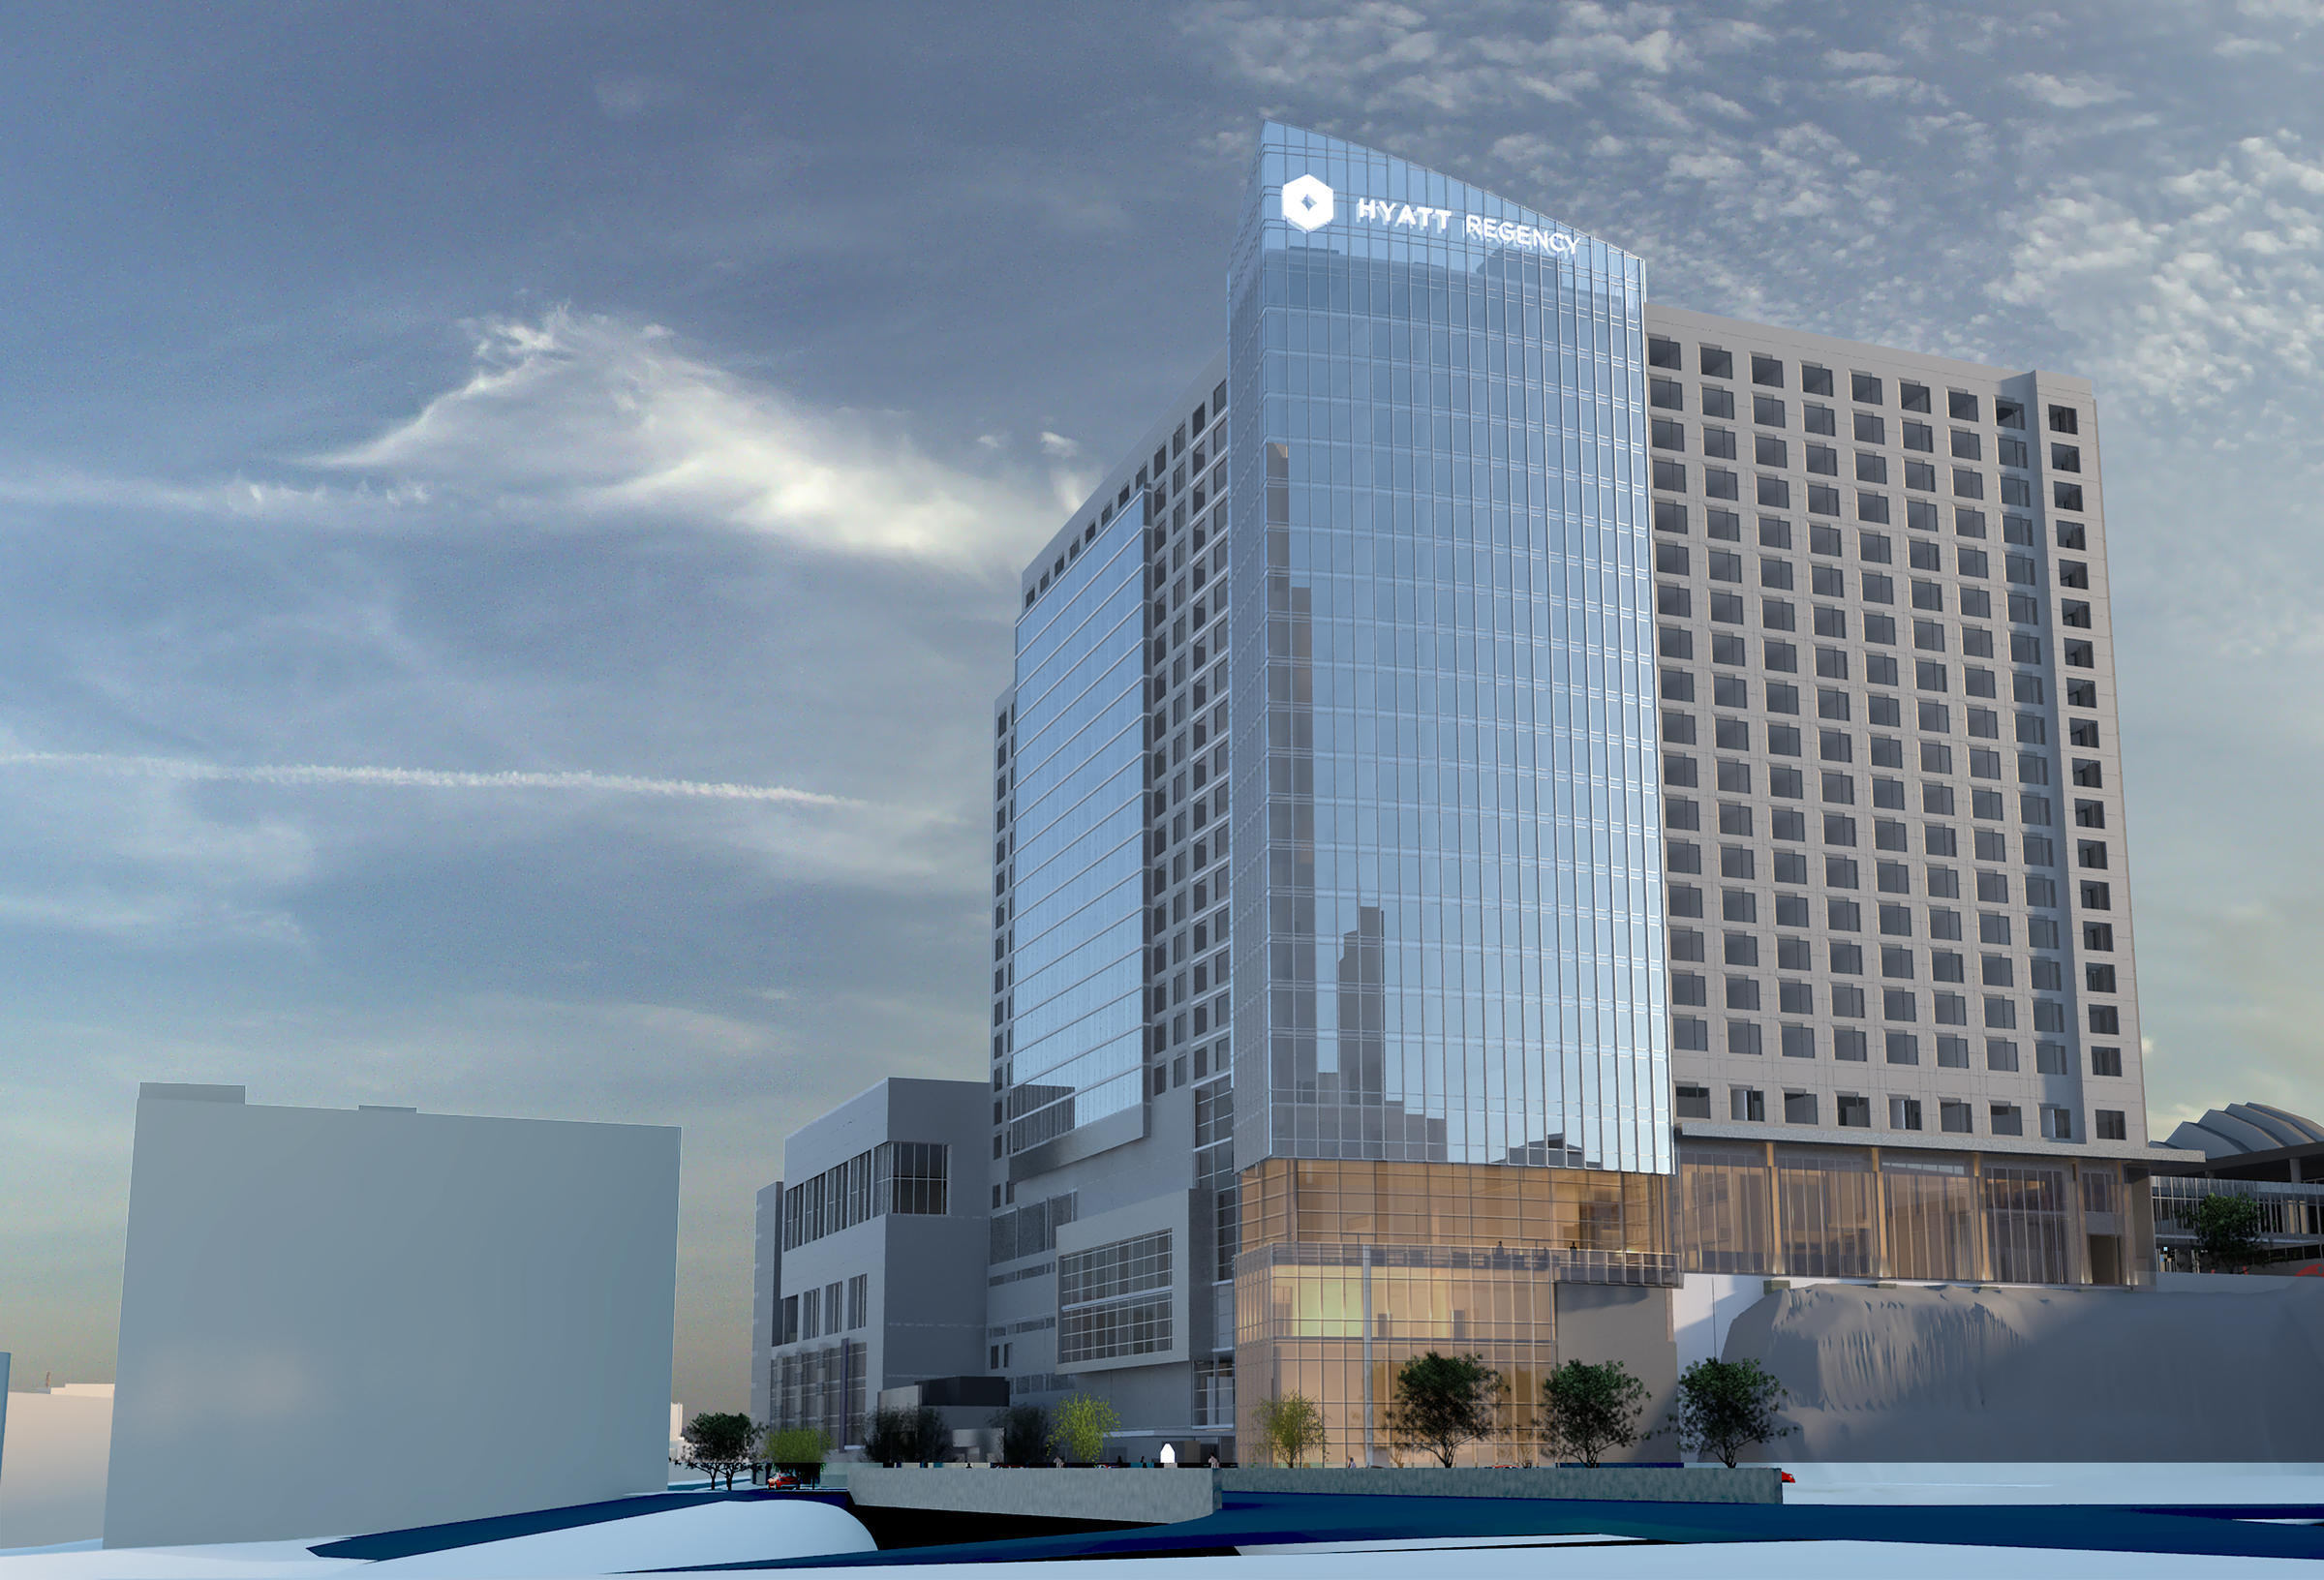 The City Plan Commission Roved An Updated Development For 800 Room Convention Hotel In Downtown Kansas